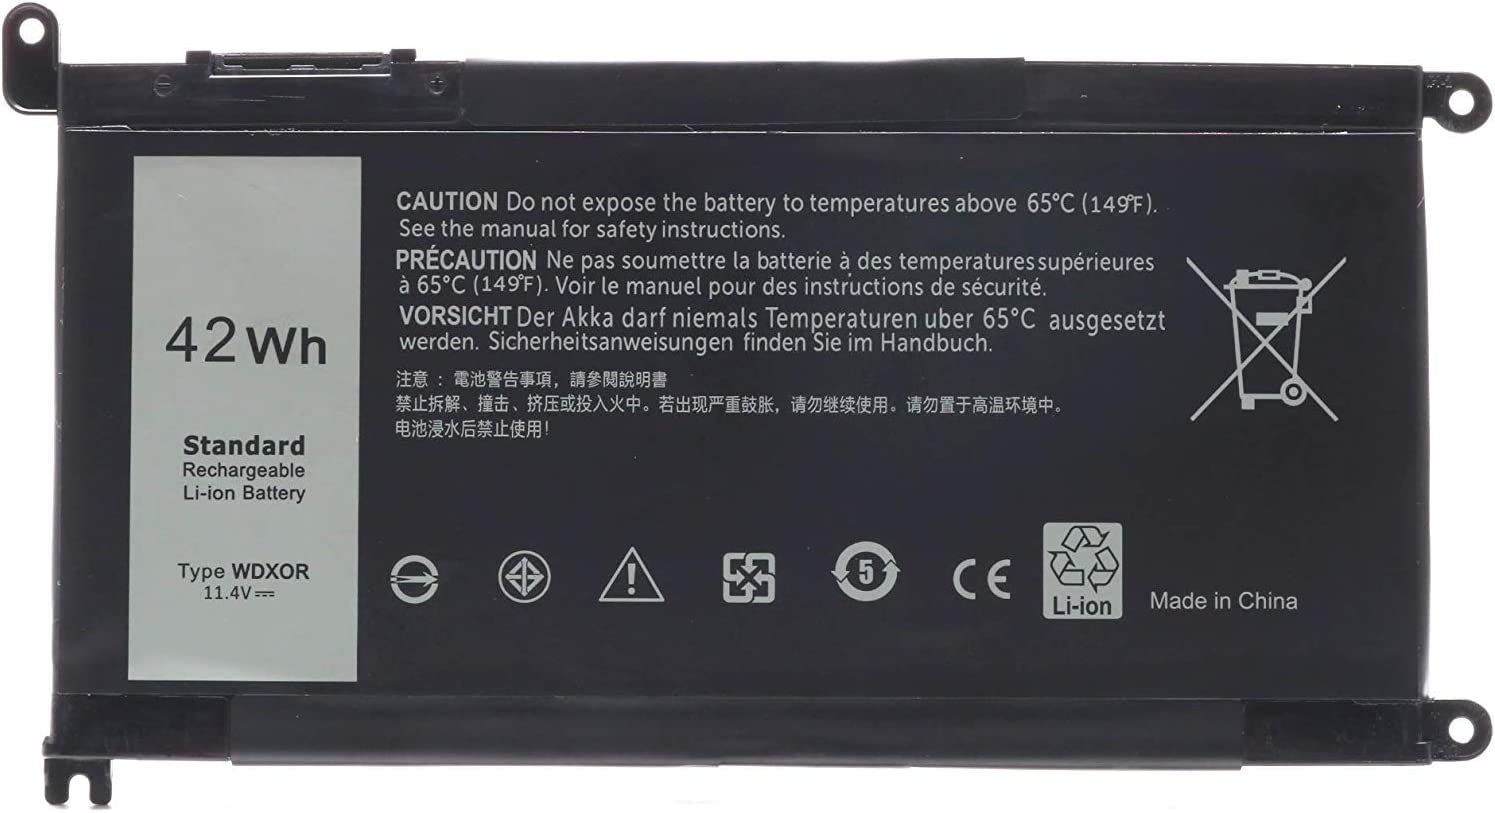 Ursulan WDX0R Laptop Battery for Dell Inspiron 13 5368 5378 5379 7368 7378 Inspiron 14-7460 Inspiron 15 5565 5567 5568 5578 7560 7570 7579 7569 Inspiron 5000 7000 17 5000 Series Laptop 3CRH3 T2JX4